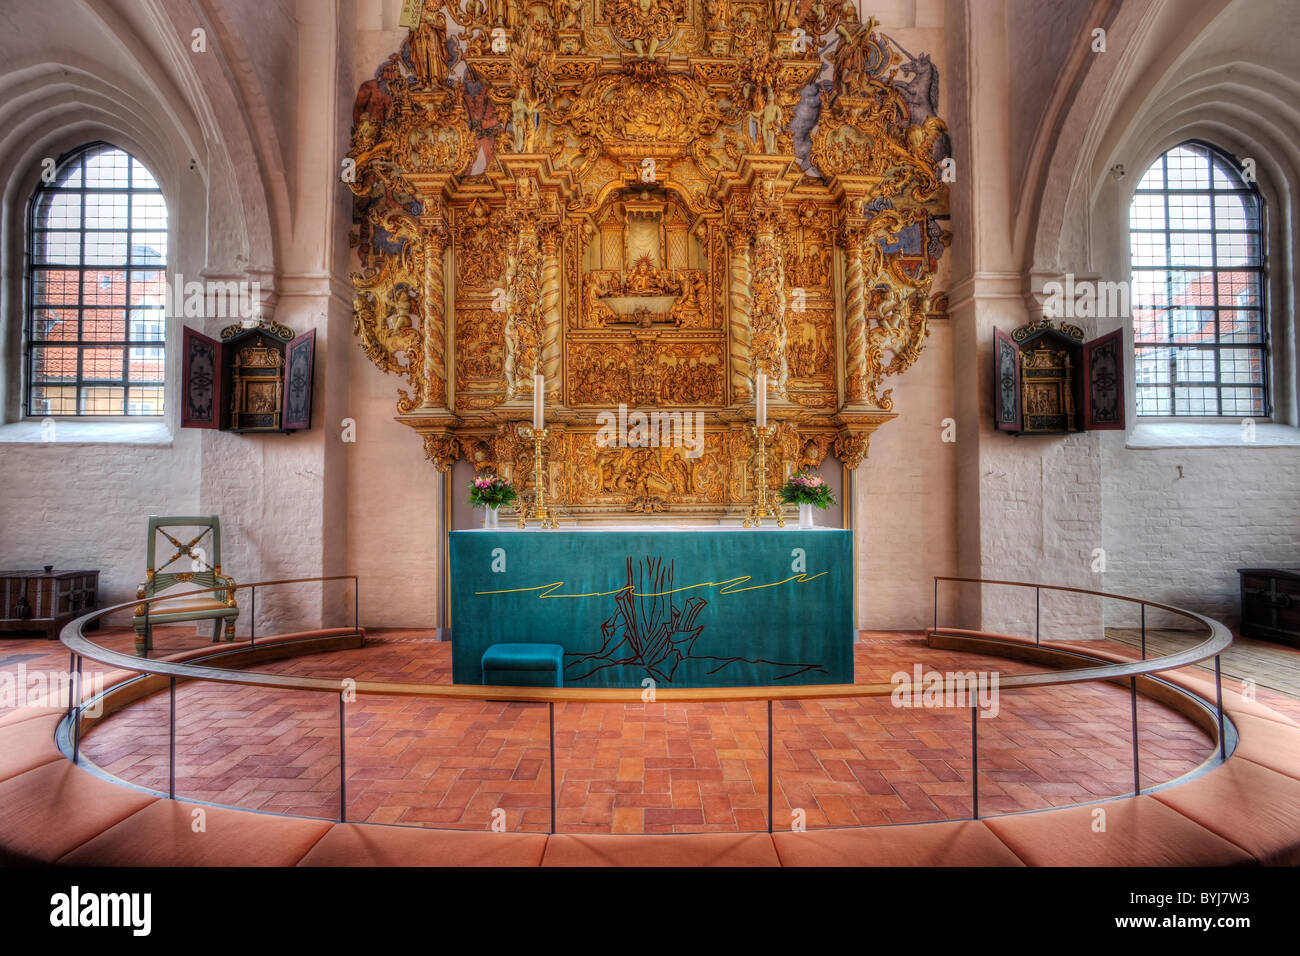 The alter in Elsinore Cathedral - Stock Image